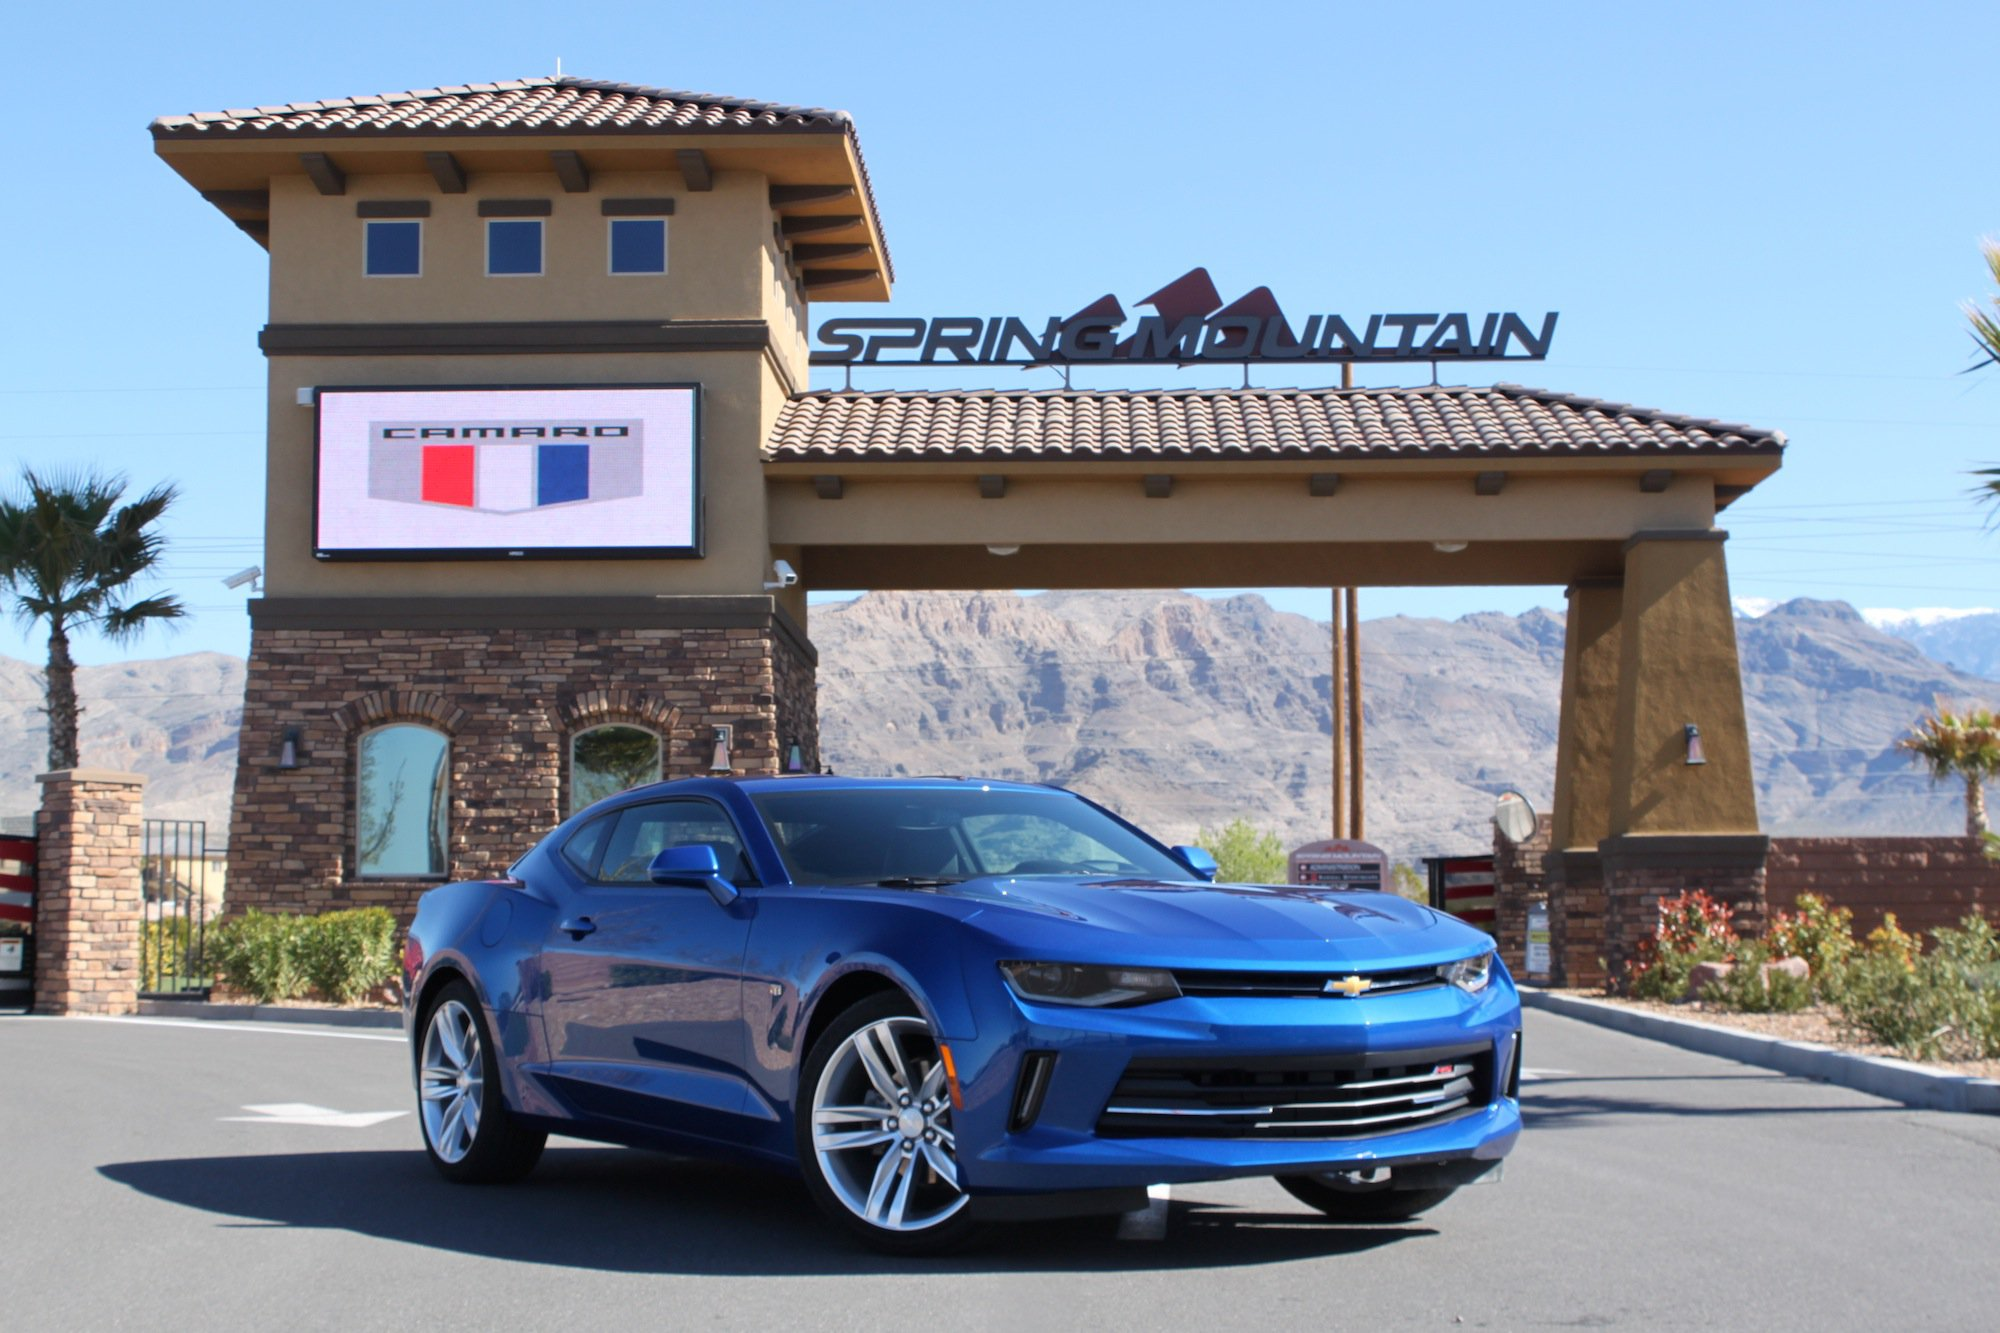 Gm Tripled Chevrolet Camaro Incentives In September Made Small Dent Bulging Inventory